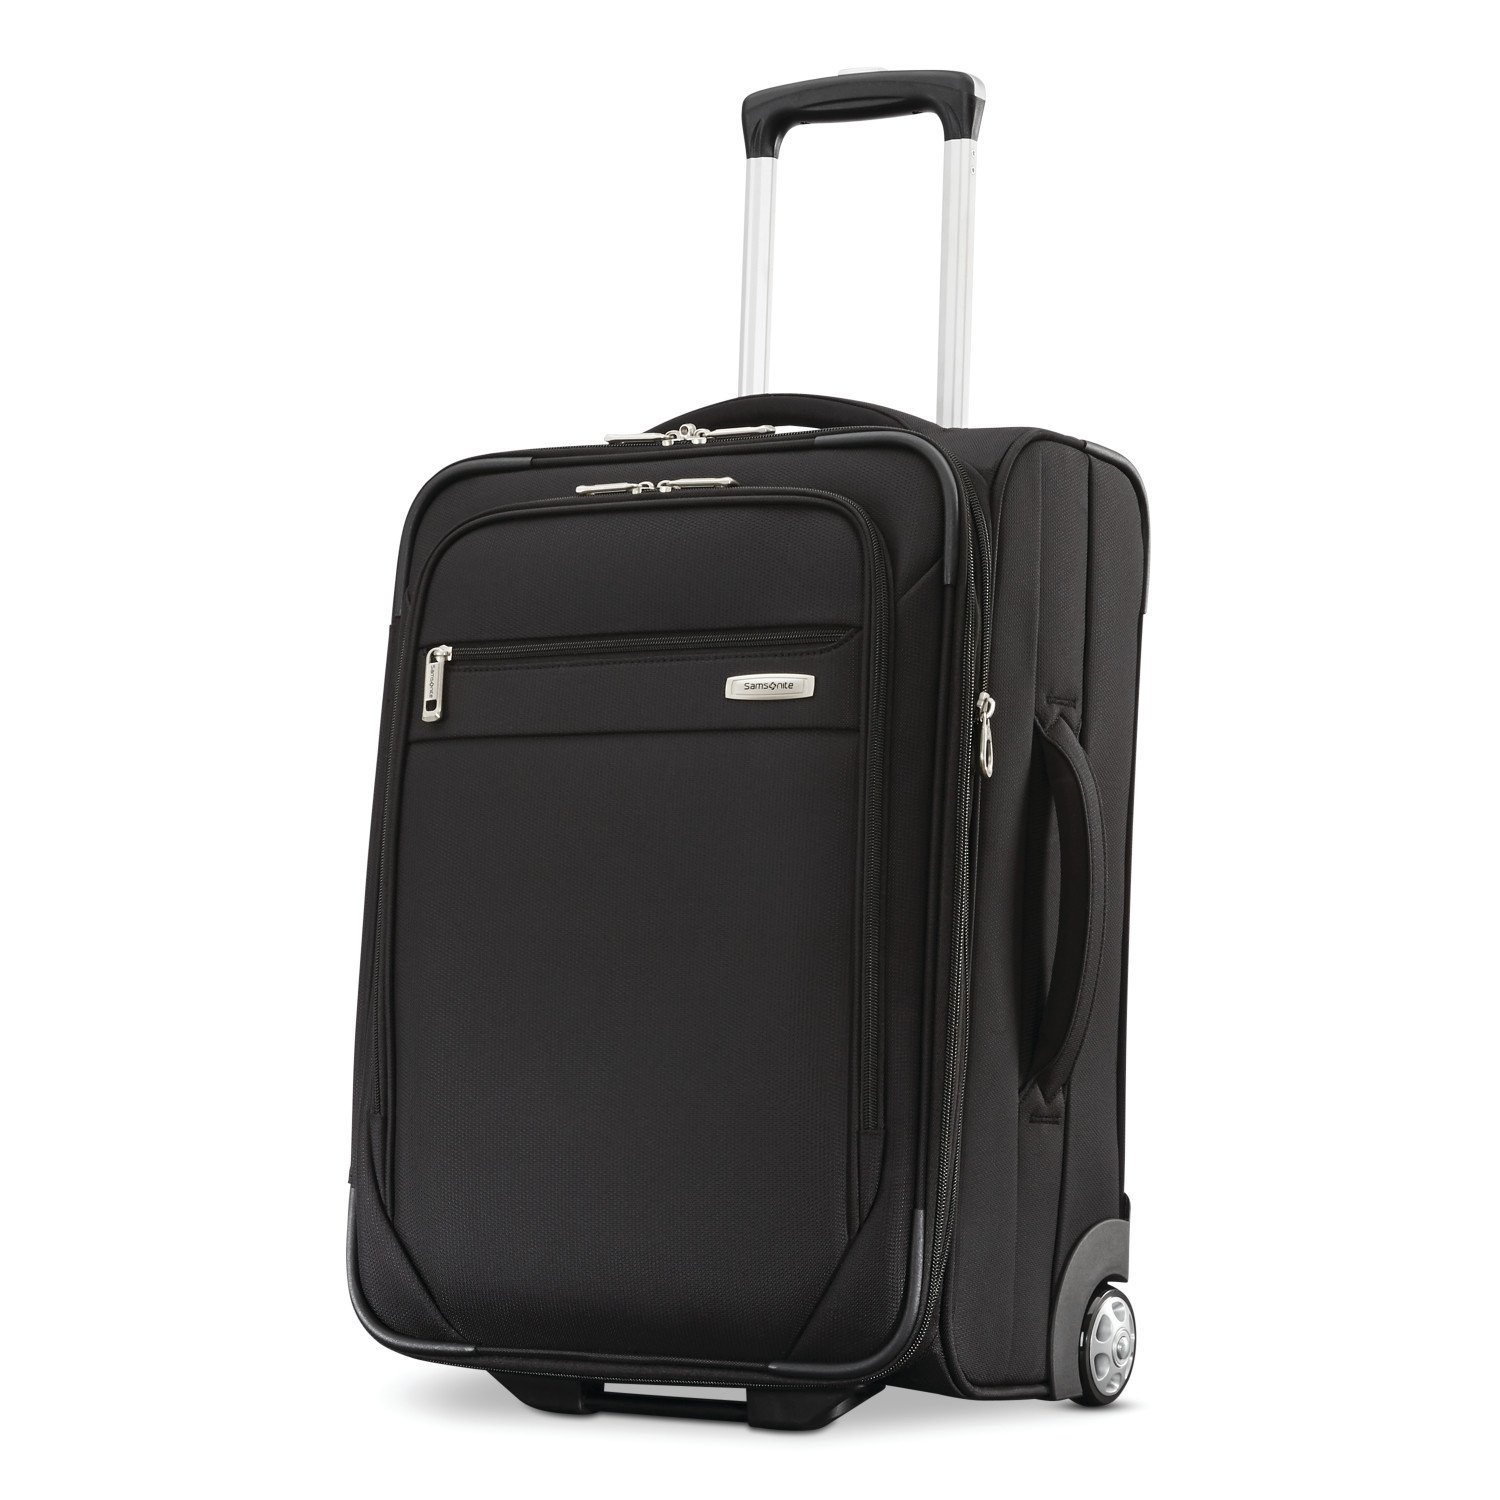 Samsonite Advena Expandable Softside Upright, 21 Inch, Black